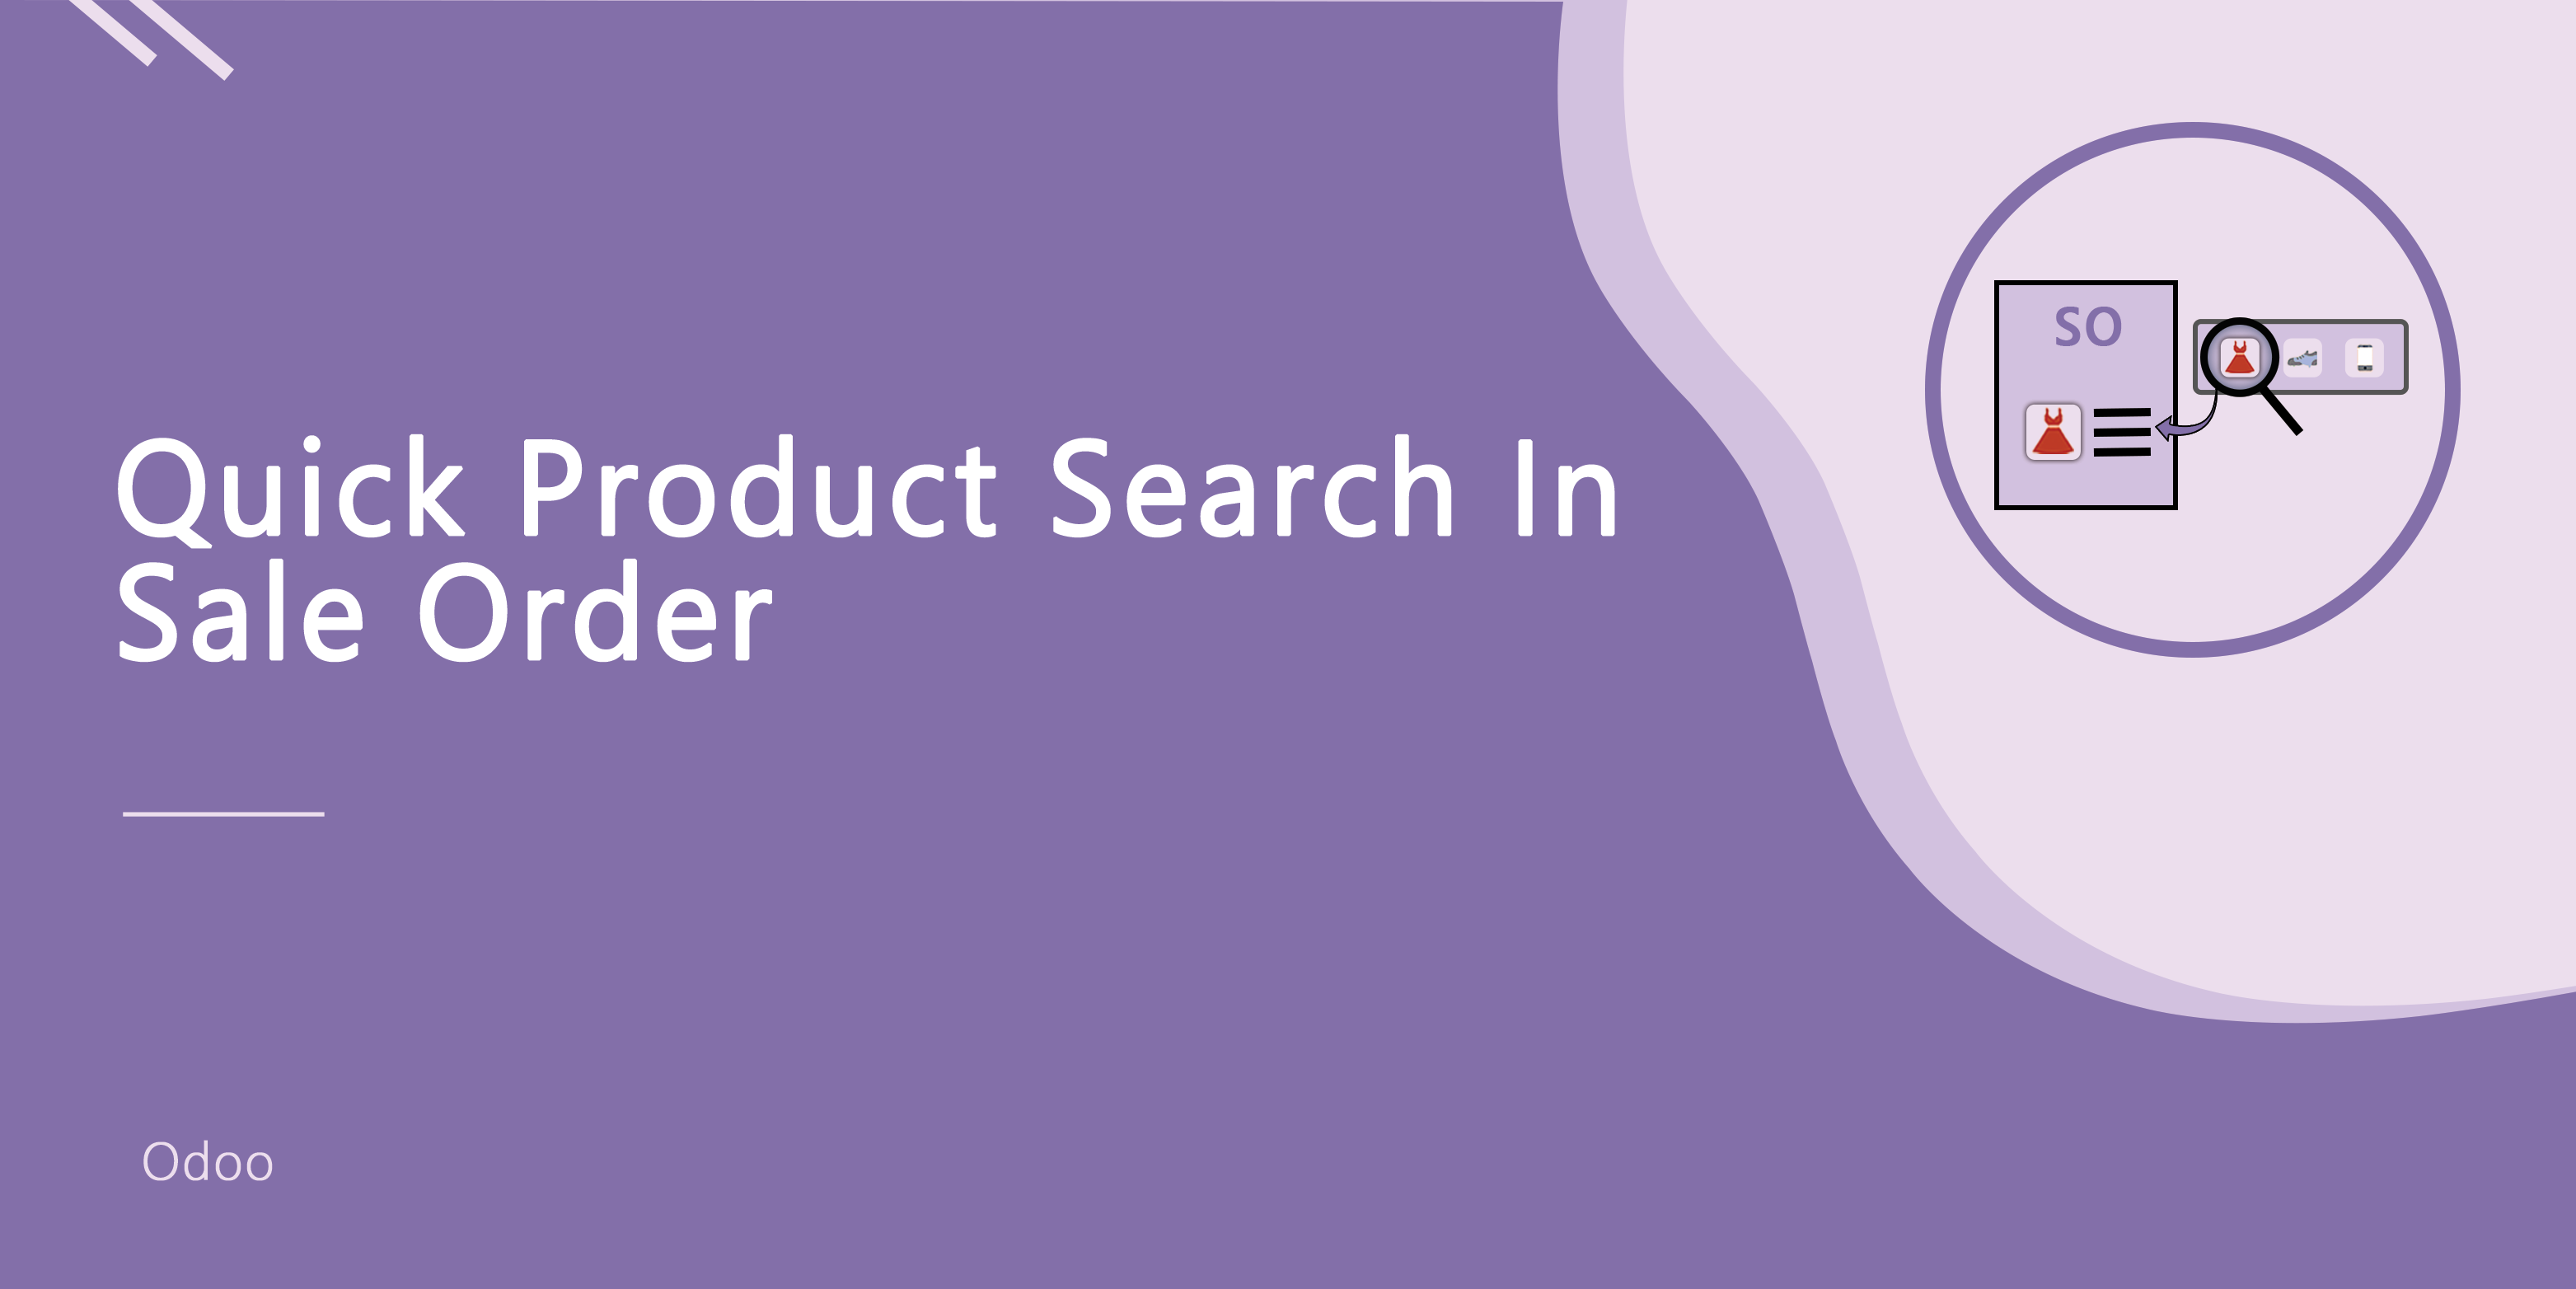 Quick Product Search in Sale Order